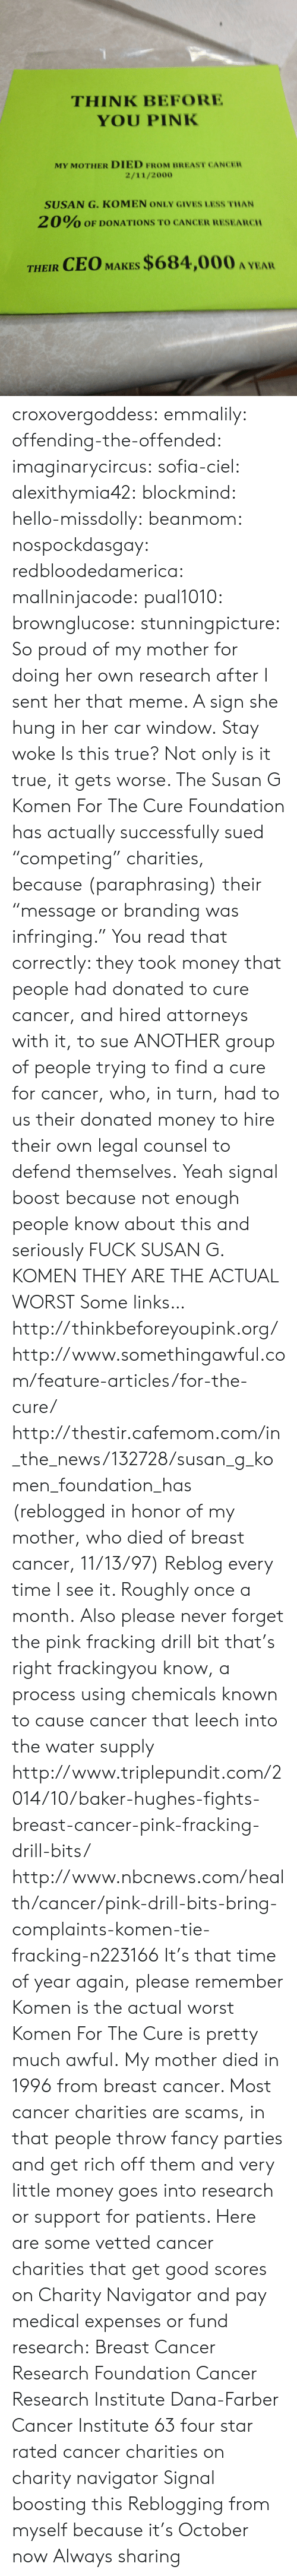 """Breast Cancer: THINK BEFORE  YOU PINK  MY MOTHER DIED FROM BREAST CANCER  2/11/2000  SUSAN G. KOMEN ONLY GIVES LESS THAN  2 0% OF DONATIONS TO CANCER RESEARCH  THEIR CEO MAKES $684,000 A YEA croxovergoddess: emmalily:  offending-the-offended:  imaginarycircus:  sofia-ciel:  alexithymia42:  blockmind:  hello-missdolly:  beanmom:  nospockdasgay:  redbloodedamerica:  mallninjacode:  pual1010:  brownglucose:  stunningpicture:  So proud of my mother for doing her own research after I sent her that meme. A sign she hung in her car window.  Stay woke  Is this true?  Not only is it true, it gets worse. The Susan G Komen For The Cure Foundation has actually successfully sued """"competing"""" charities, because(paraphrasing)their """"message or branding was infringing."""" You read that correctly: they took money that people had donated to cure cancer, and hired attorneys with it, to sue ANOTHER group of people trying to find a cure for cancer, who, in turn, had to us their donated money to hire their own legal counsel to defend themselves.    Yeah signal boost because not enough people know about this and seriously FUCK SUSAN G. KOMEN THEY ARE THE ACTUAL WORST  Some links… http://thinkbeforeyoupink.org/ http://www.somethingawful.com/feature-articles/for-the-cure/ http://thestir.cafemom.com/in_the_news/132728/susan_g_komen_foundation_has (reblogged in honor of my mother, who died of breast cancer, 11/13/97)  Reblog every time I see it. Roughly once a month.  Also please never forget the pink fracking drill bit that's right frackingyou know, a process using chemicals known to cause cancer that leech into the water supply  http://www.triplepundit.com/2014/10/baker-hughes-fights-breast-cancer-pink-fracking-drill-bits/ http://www.nbcnews.com/health/cancer/pink-drill-bits-bring-complaints-komen-tie-fracking-n223166  It's that time of year again, please remember Komen is the actual worst  Komen For The Cure is pretty much awful.  My mother died in 1996 from breast cancer. Most cancer charitie"""